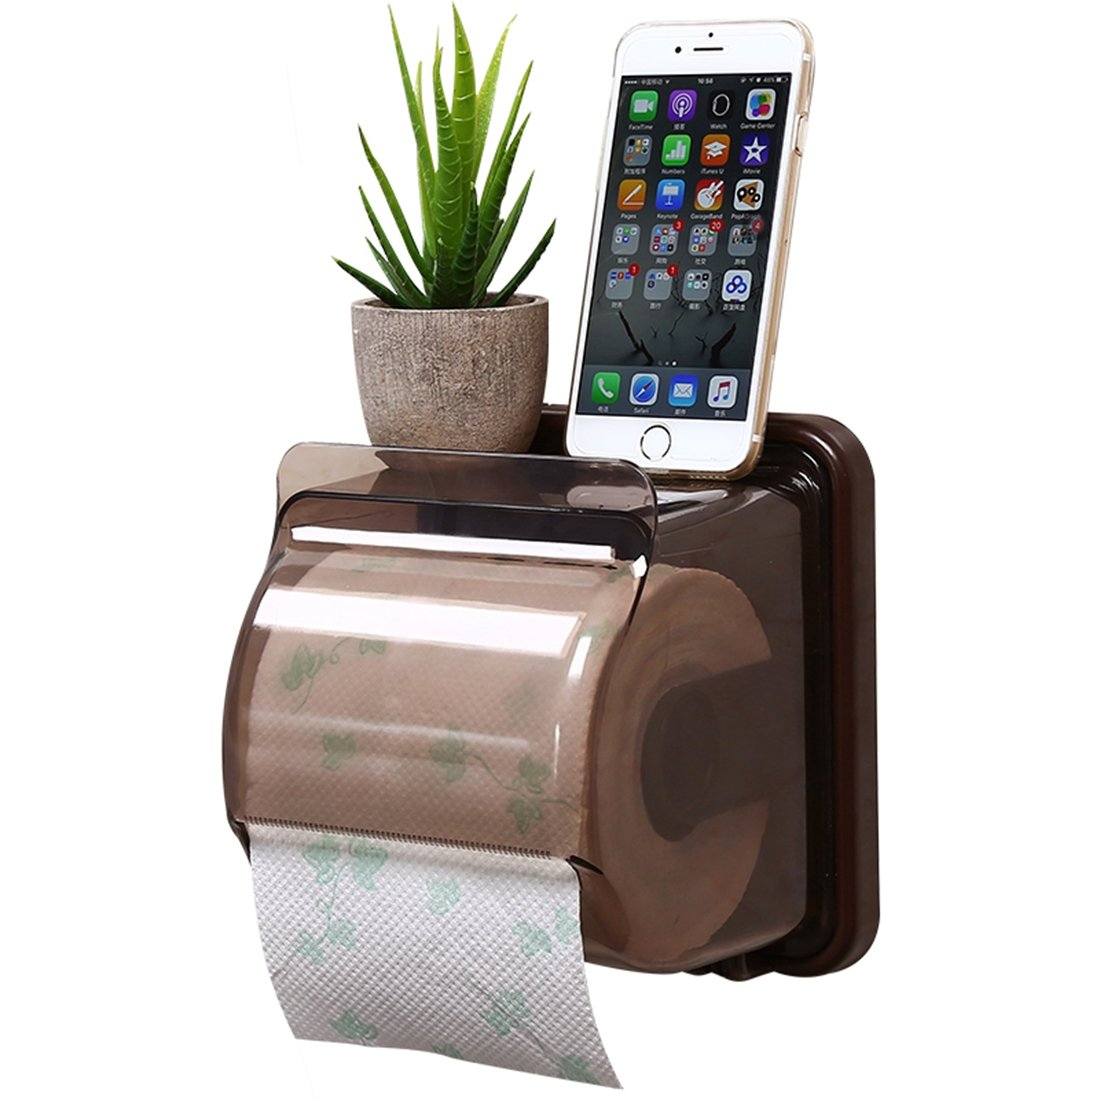 Waterproof Cat Proof Toilet Paper Holder Self Adhesive Mount with Storage Shelf Paper Roll Holder Tissue Box Paper Holder